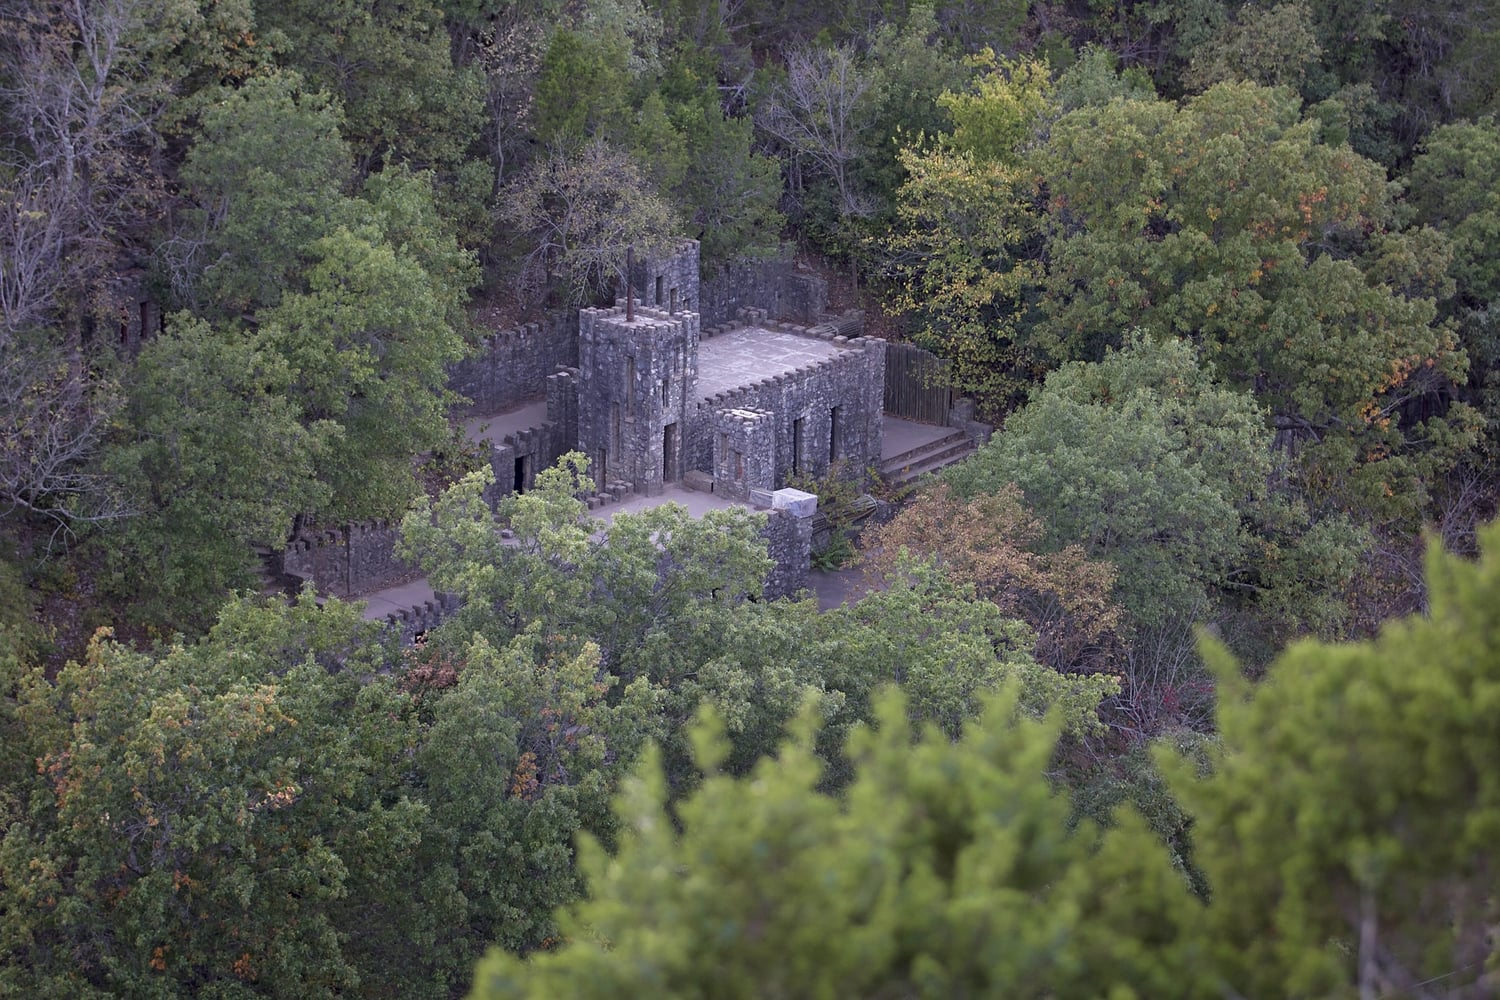 Yes, that's right, Turner Falls Park has an actually castle.